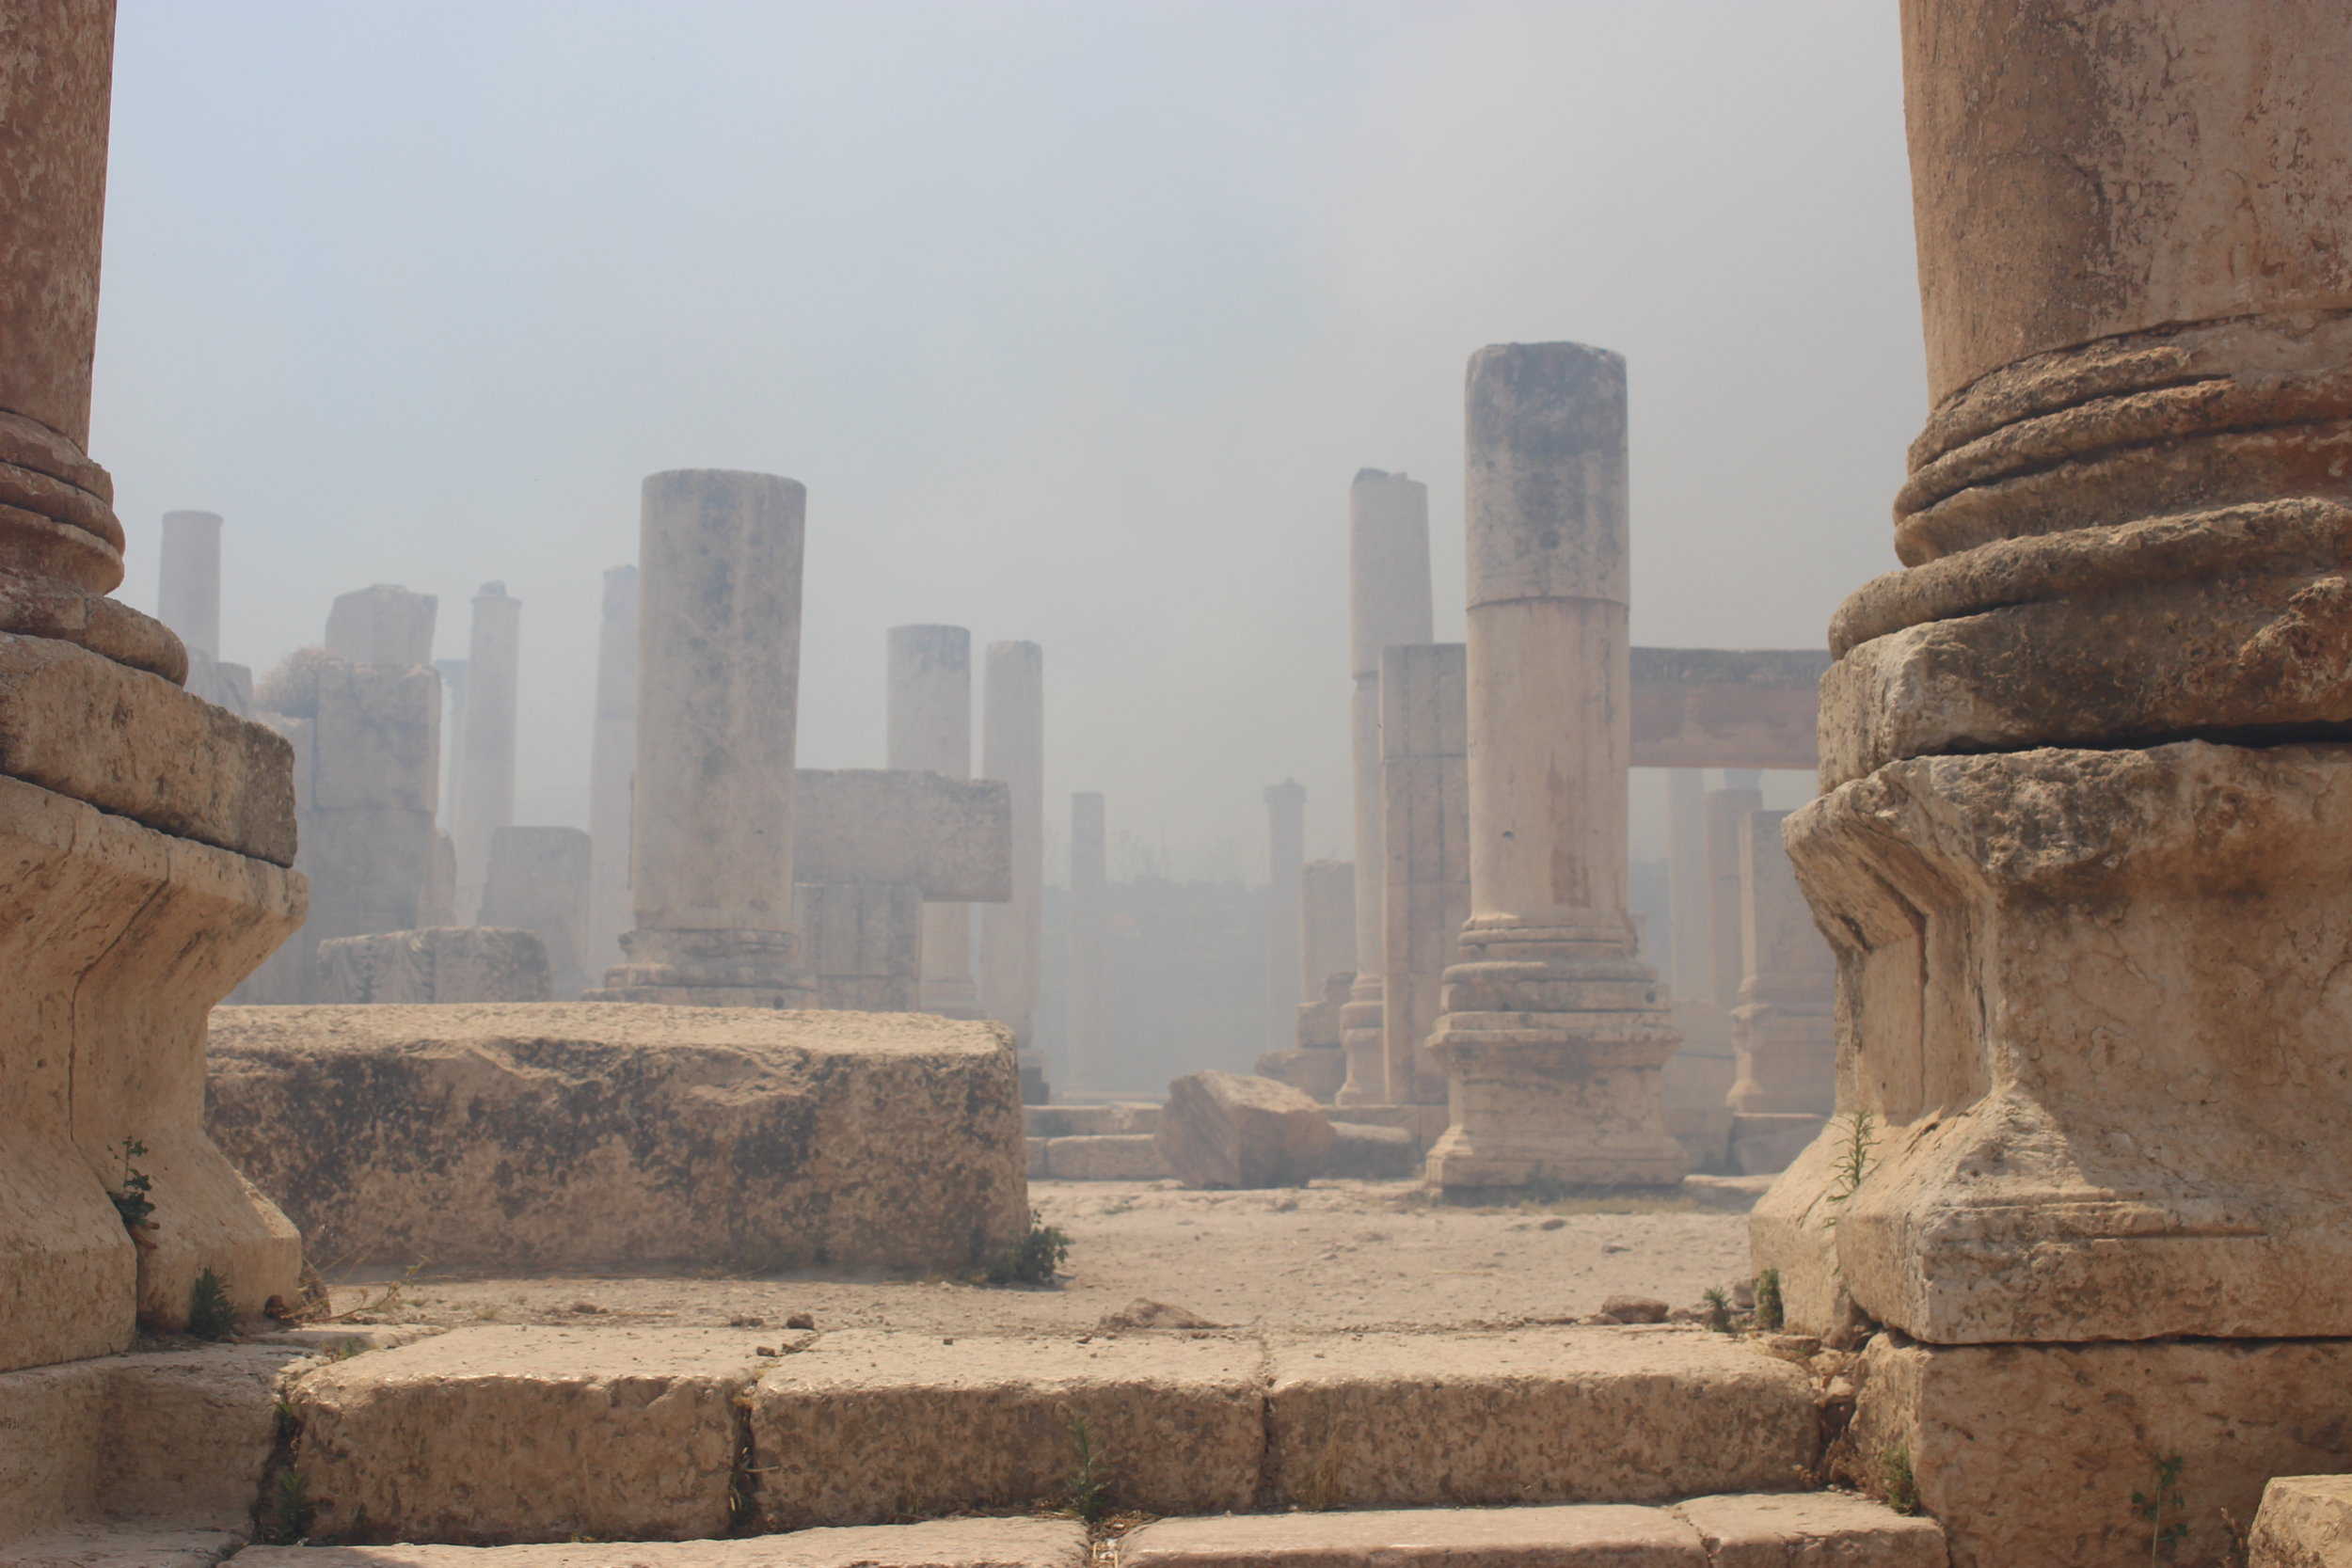 Smoke drifts eerily among the columns of an old Byzantine church. I half expected djin to emerge from the cloistered stones. Photo credit: Jessen, 2019